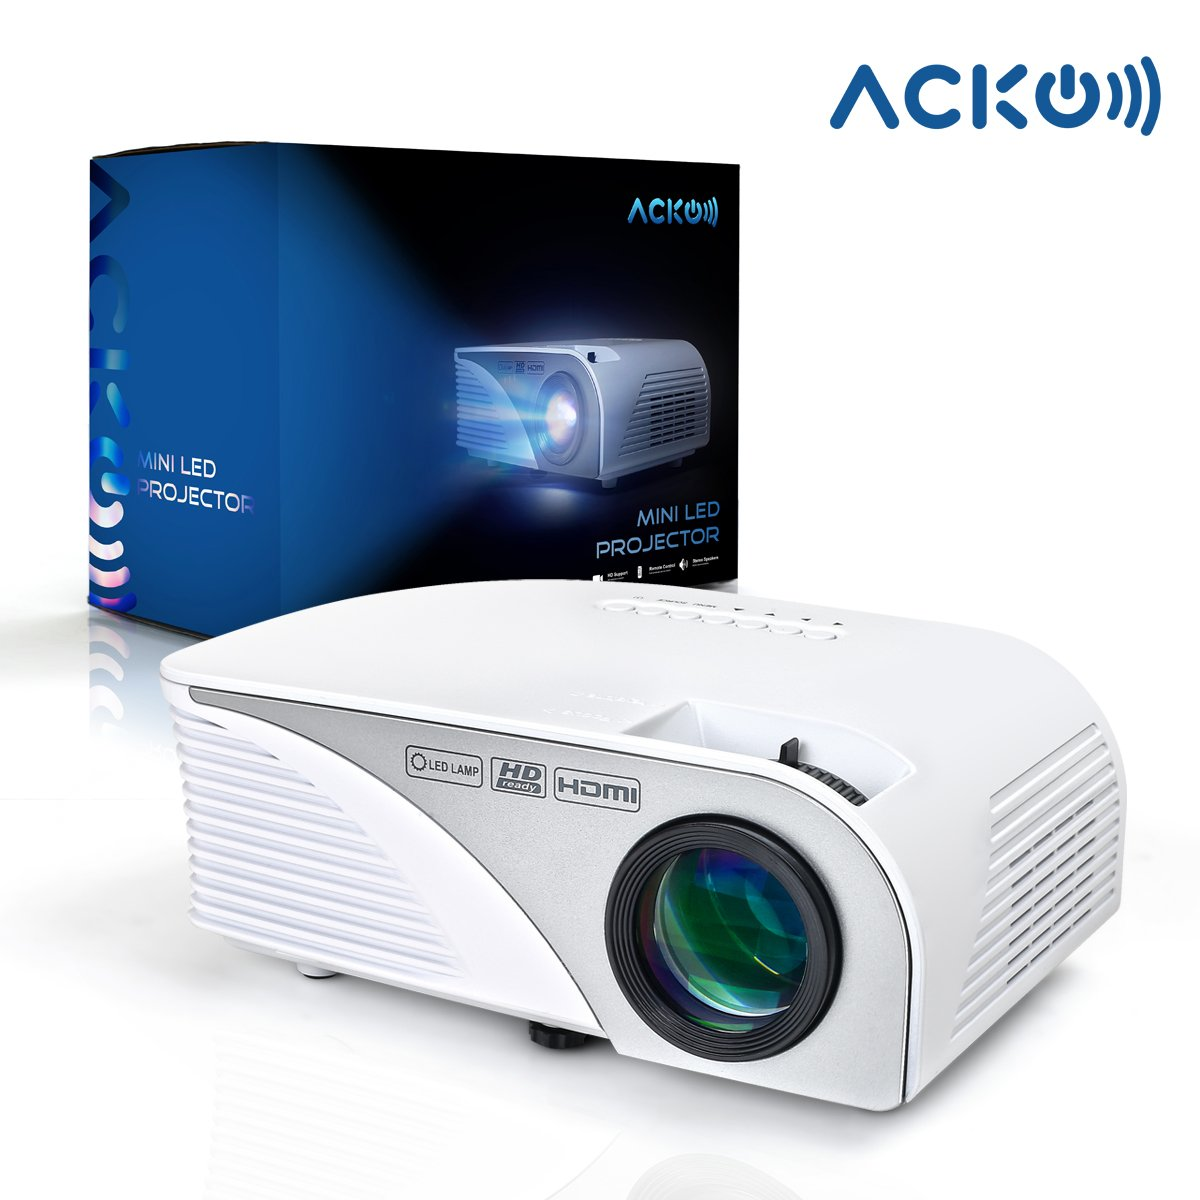 Acko portable mini hd led video projector review office for Small video projectors reviews